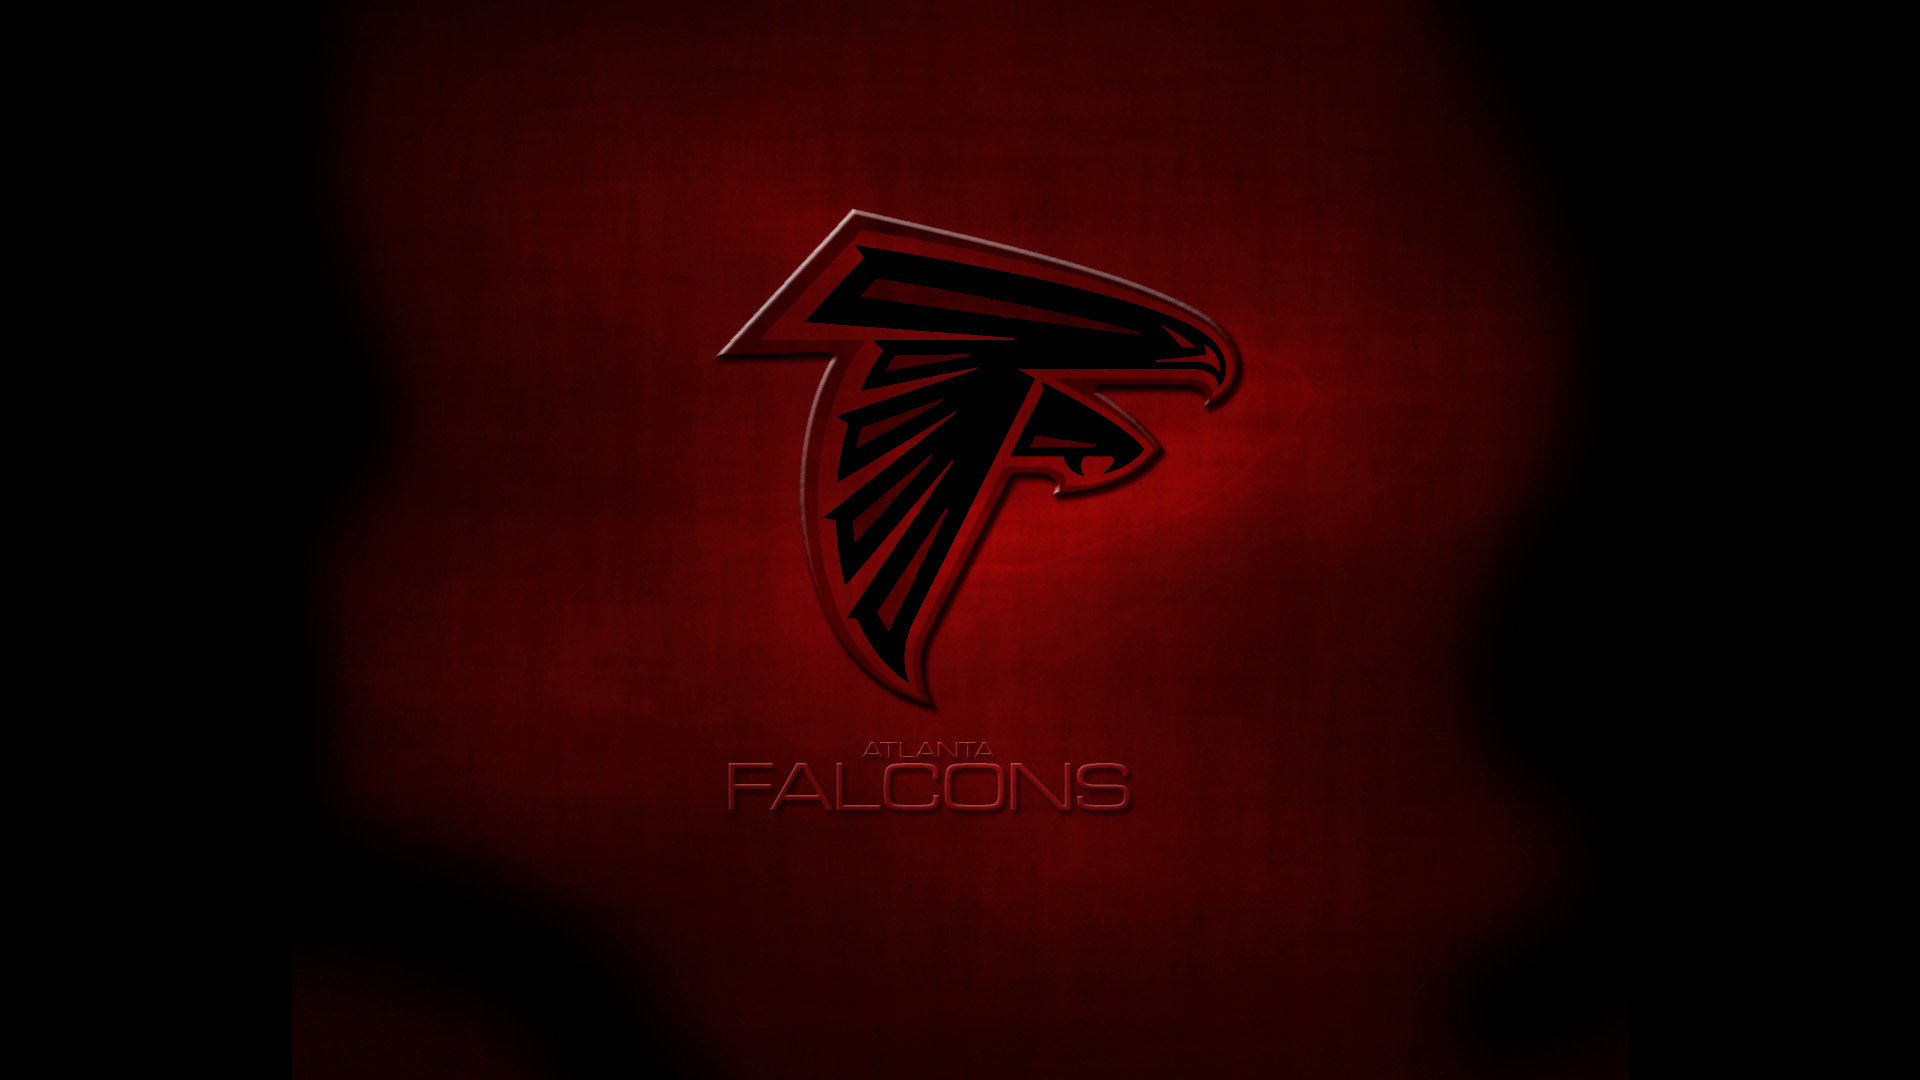 Atlanta Falcon Wallpapers Group 60: 6 Atlanta Falcons HD Wallpapers